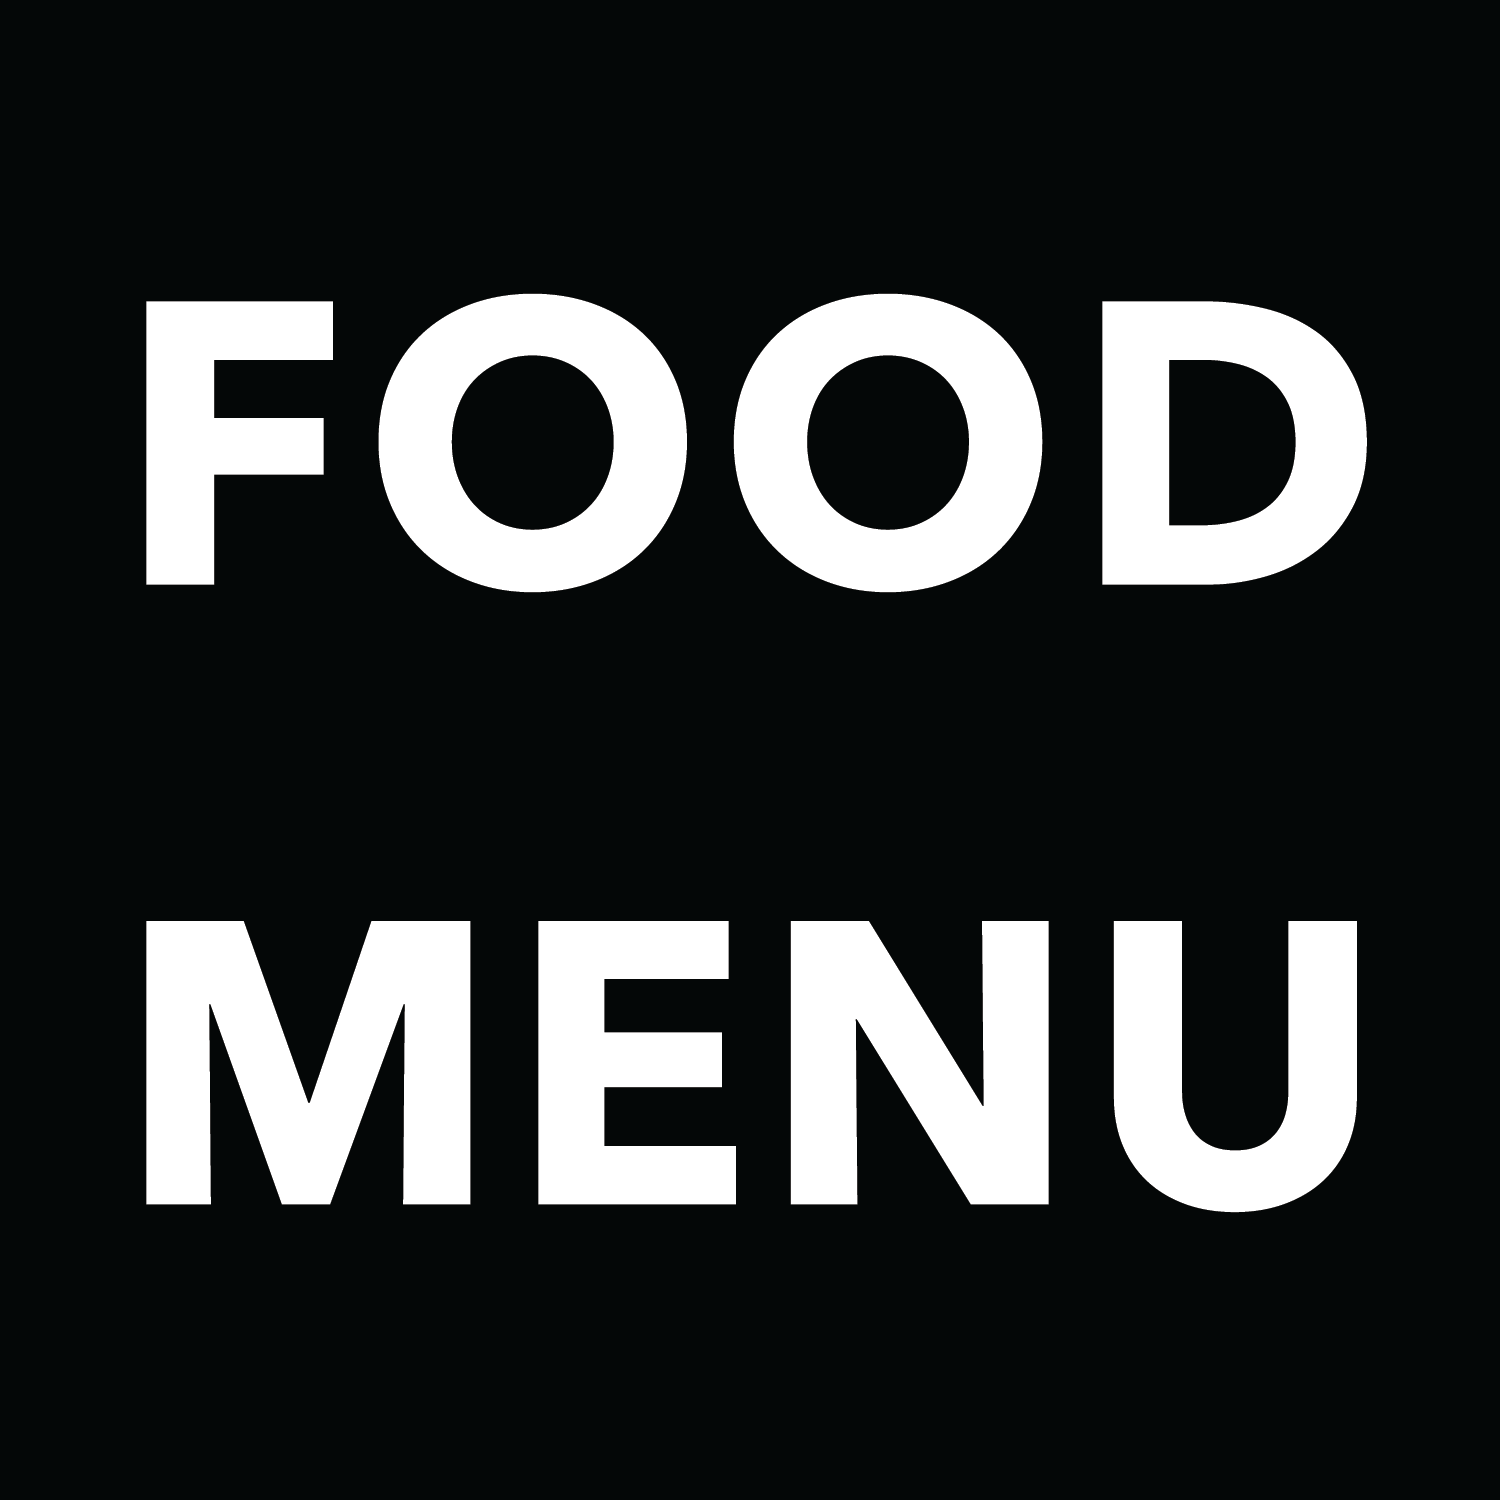 FOOD MENU-01.png